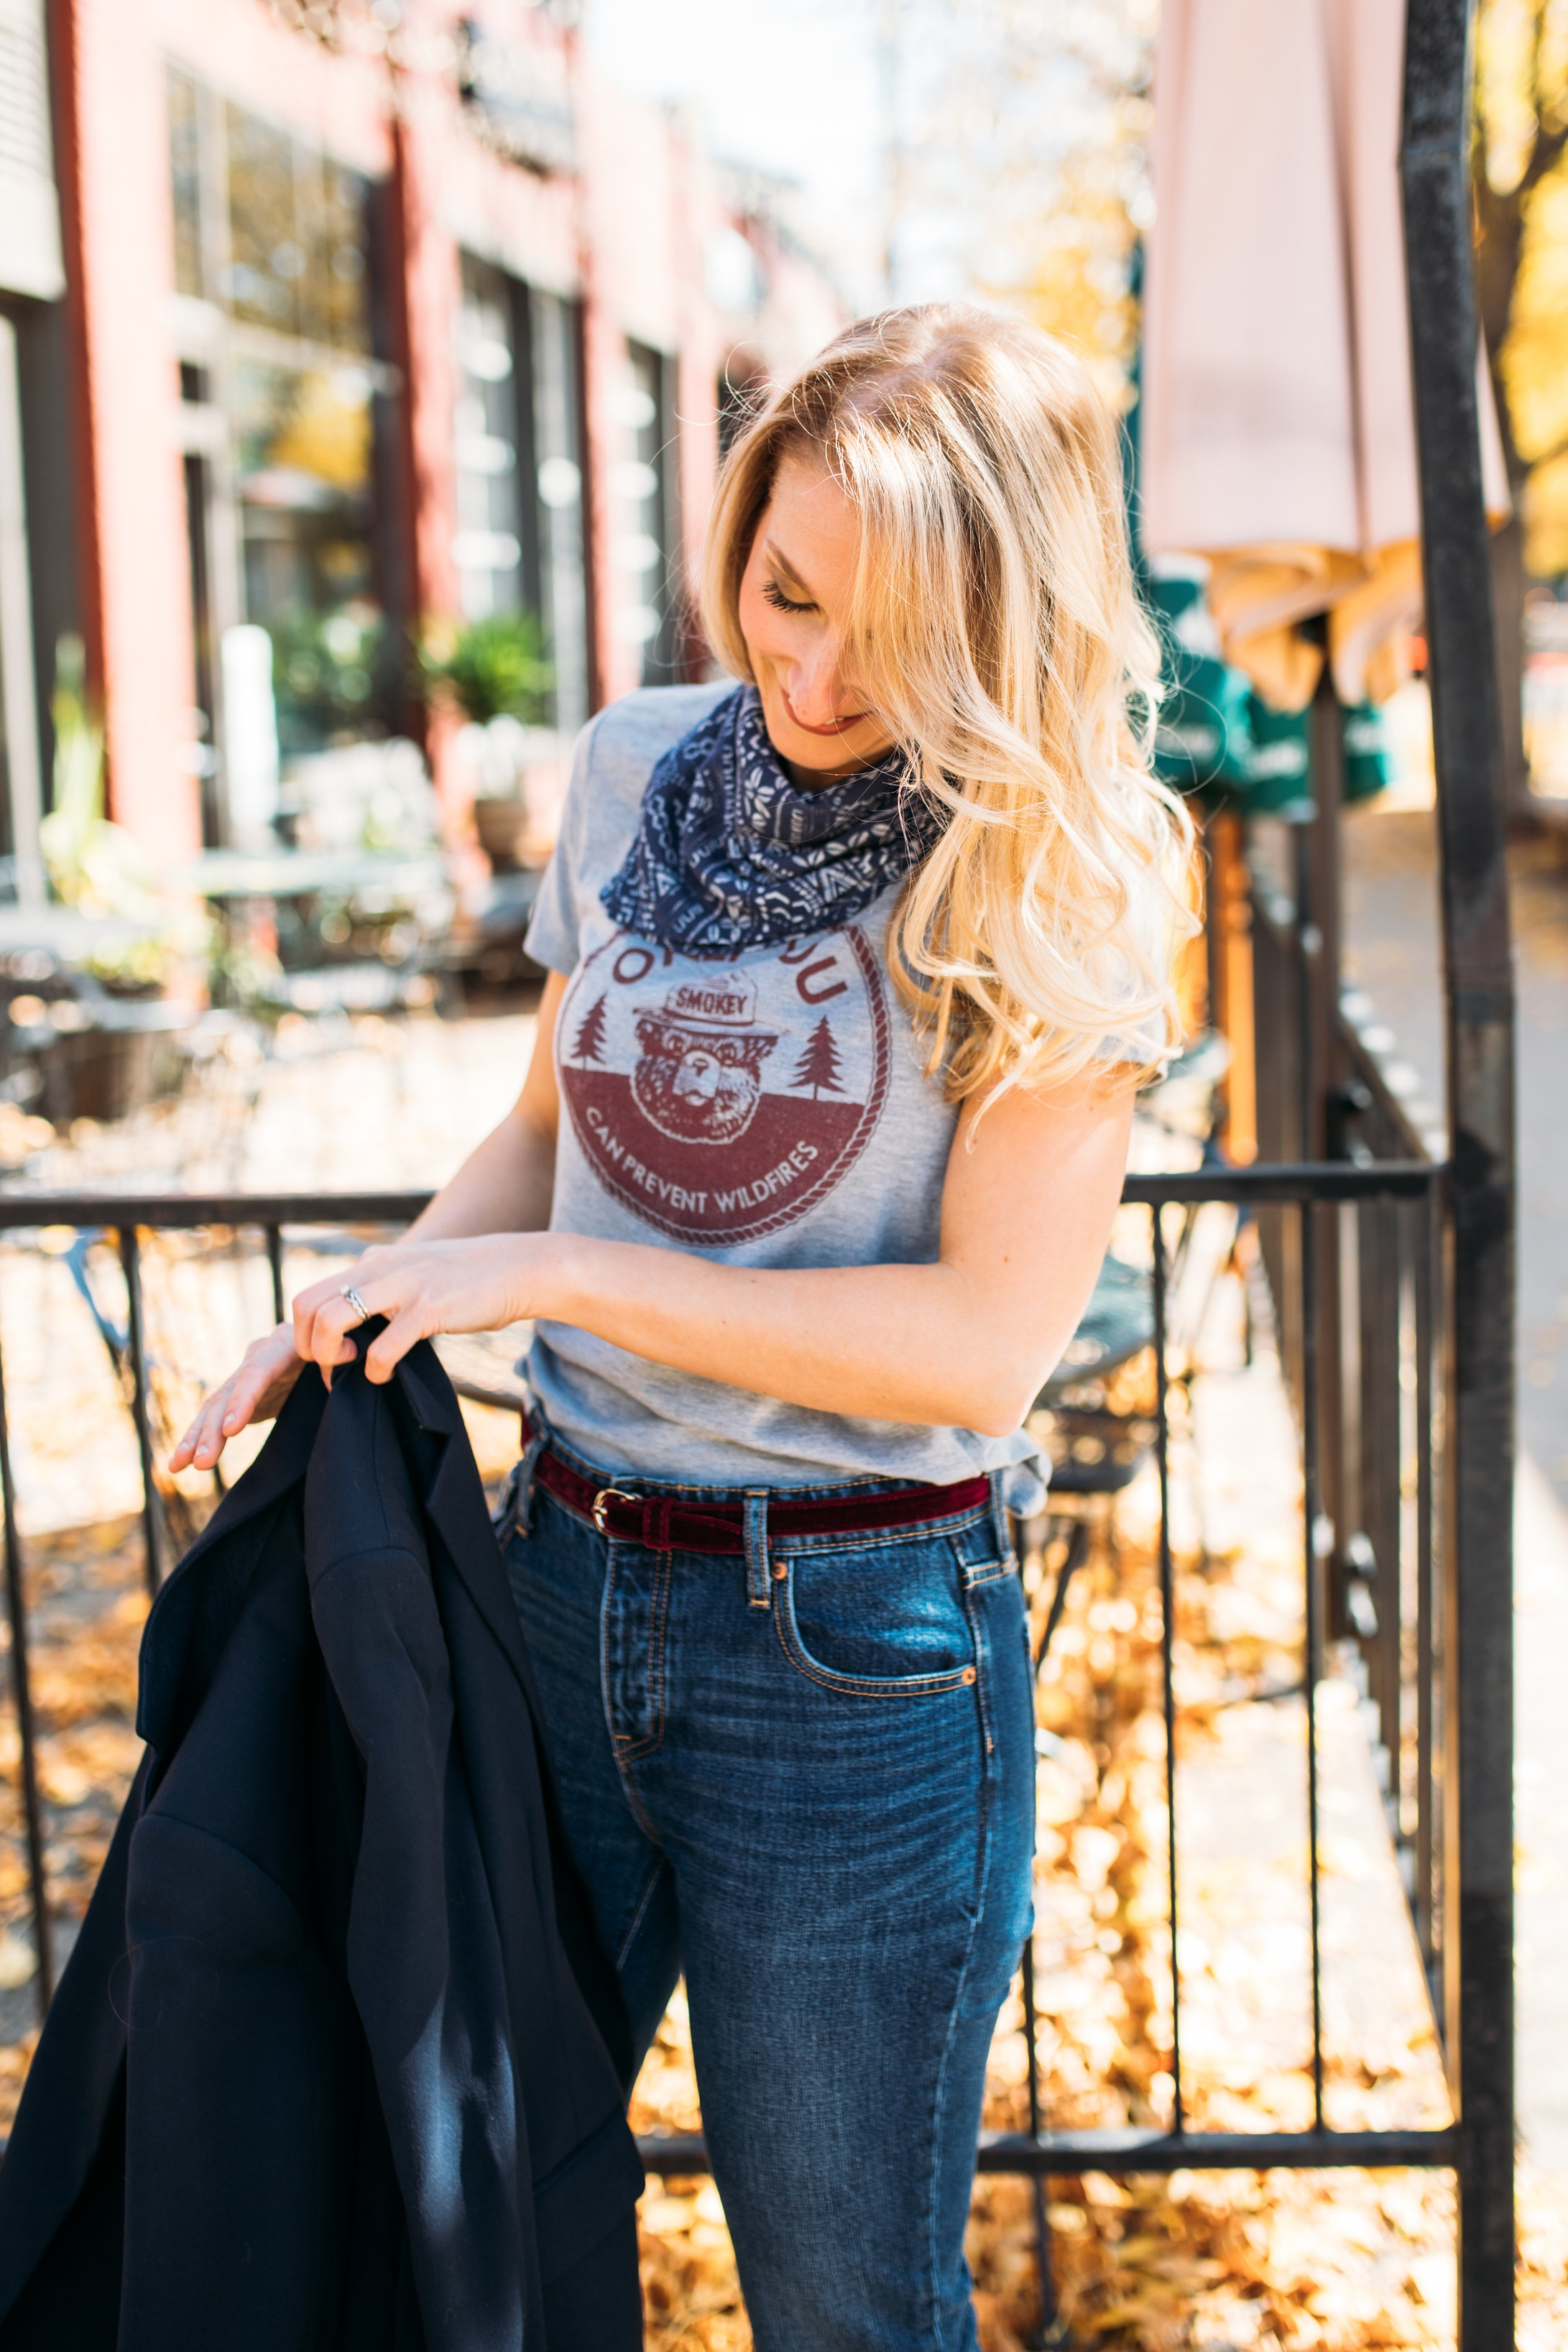 10 Reasons to Try a High-Waisted Jean - Denver Personal Stylist